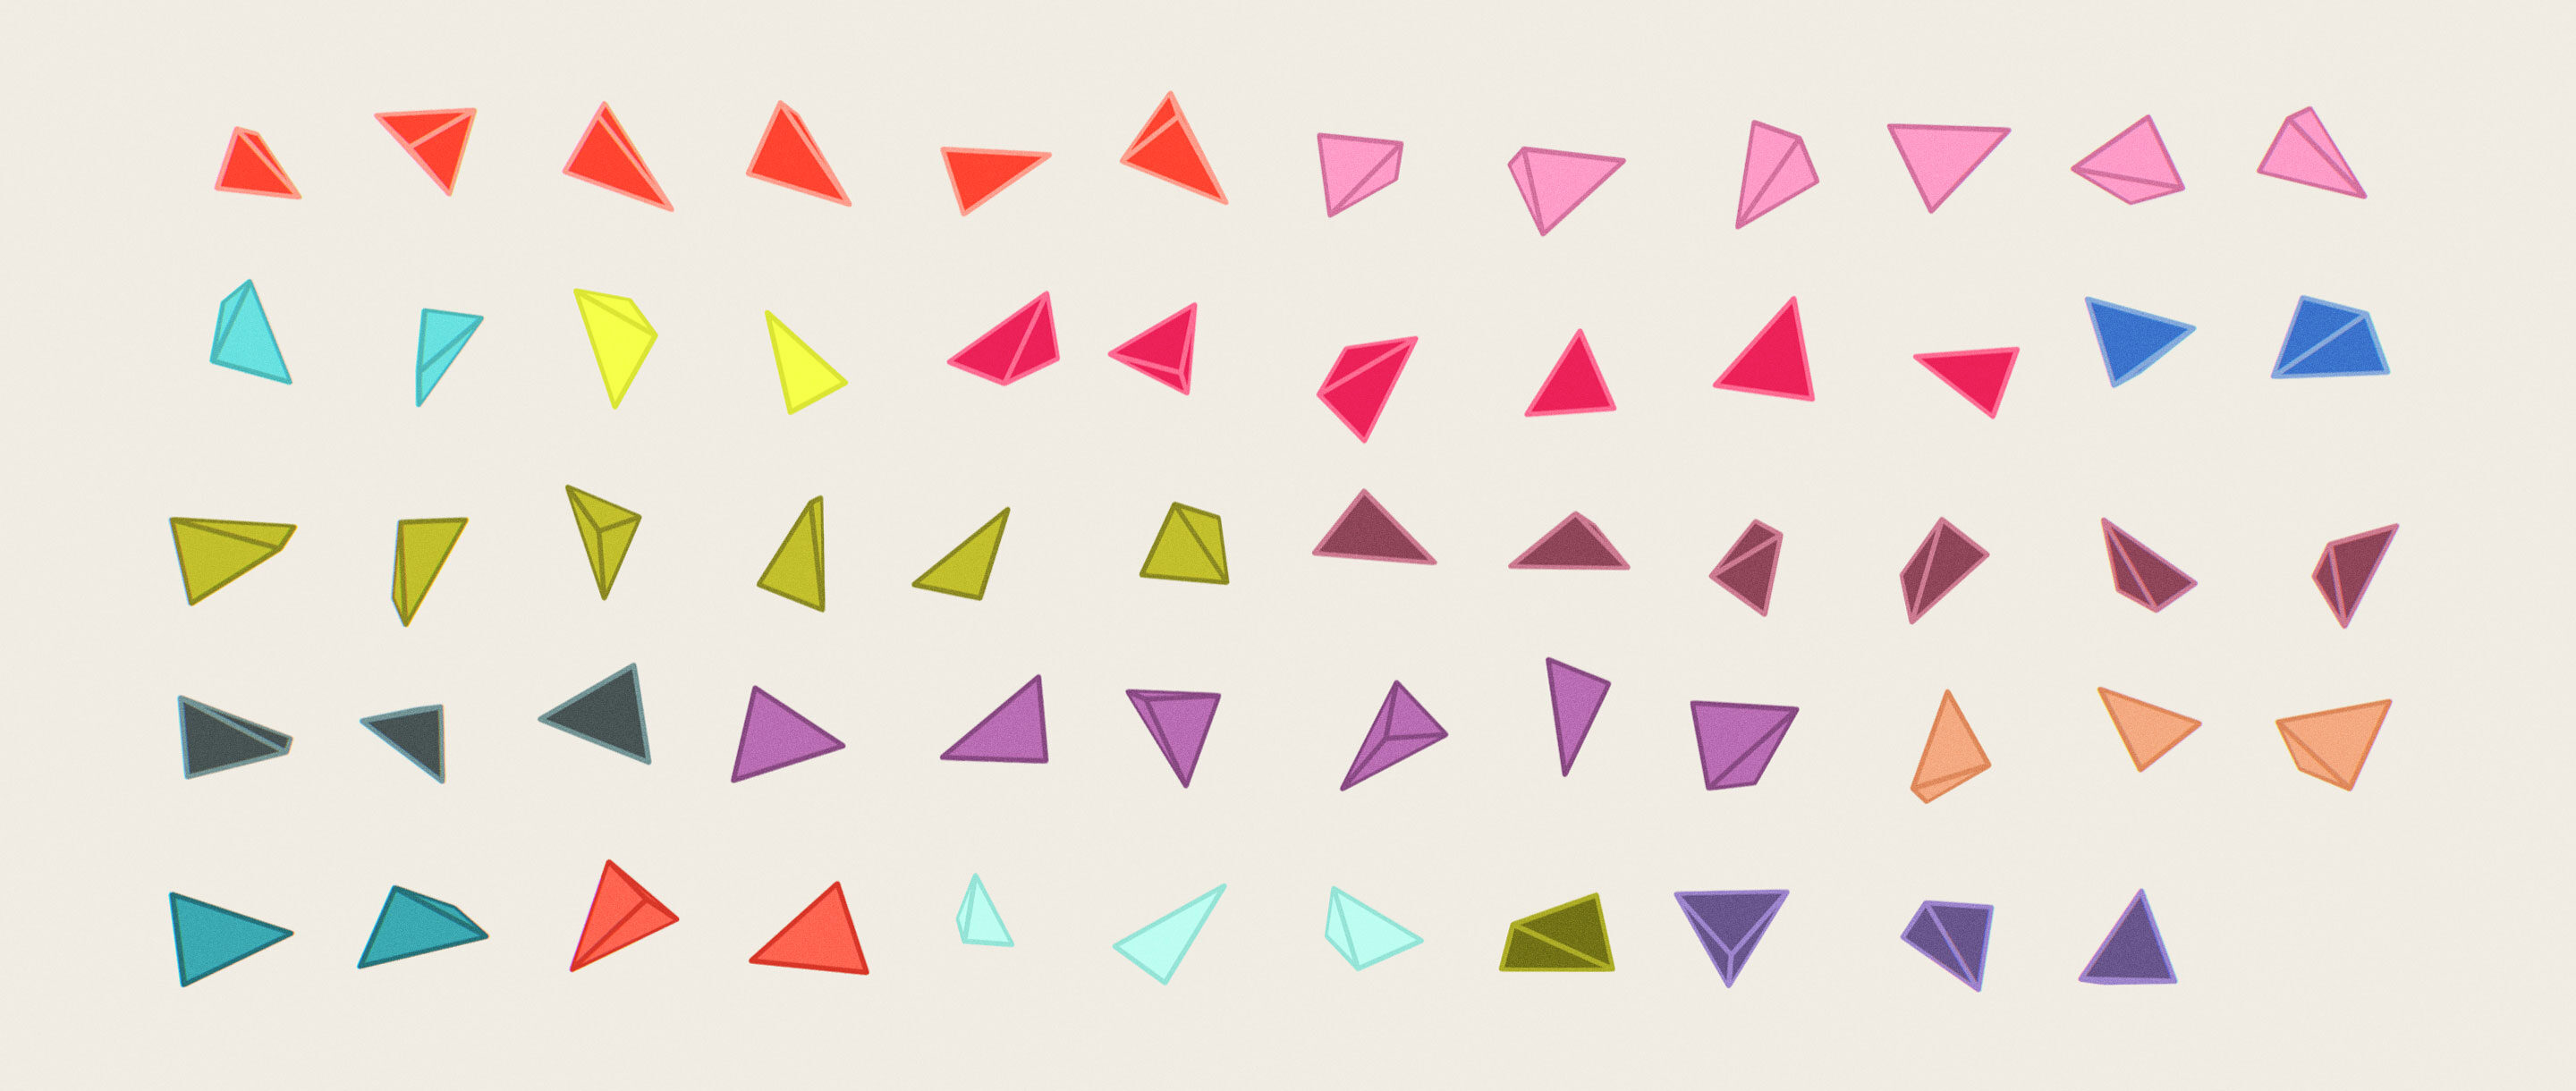 Colorful isualization of the 59 isolated examples of tetrahedra that have rational dihedral angles